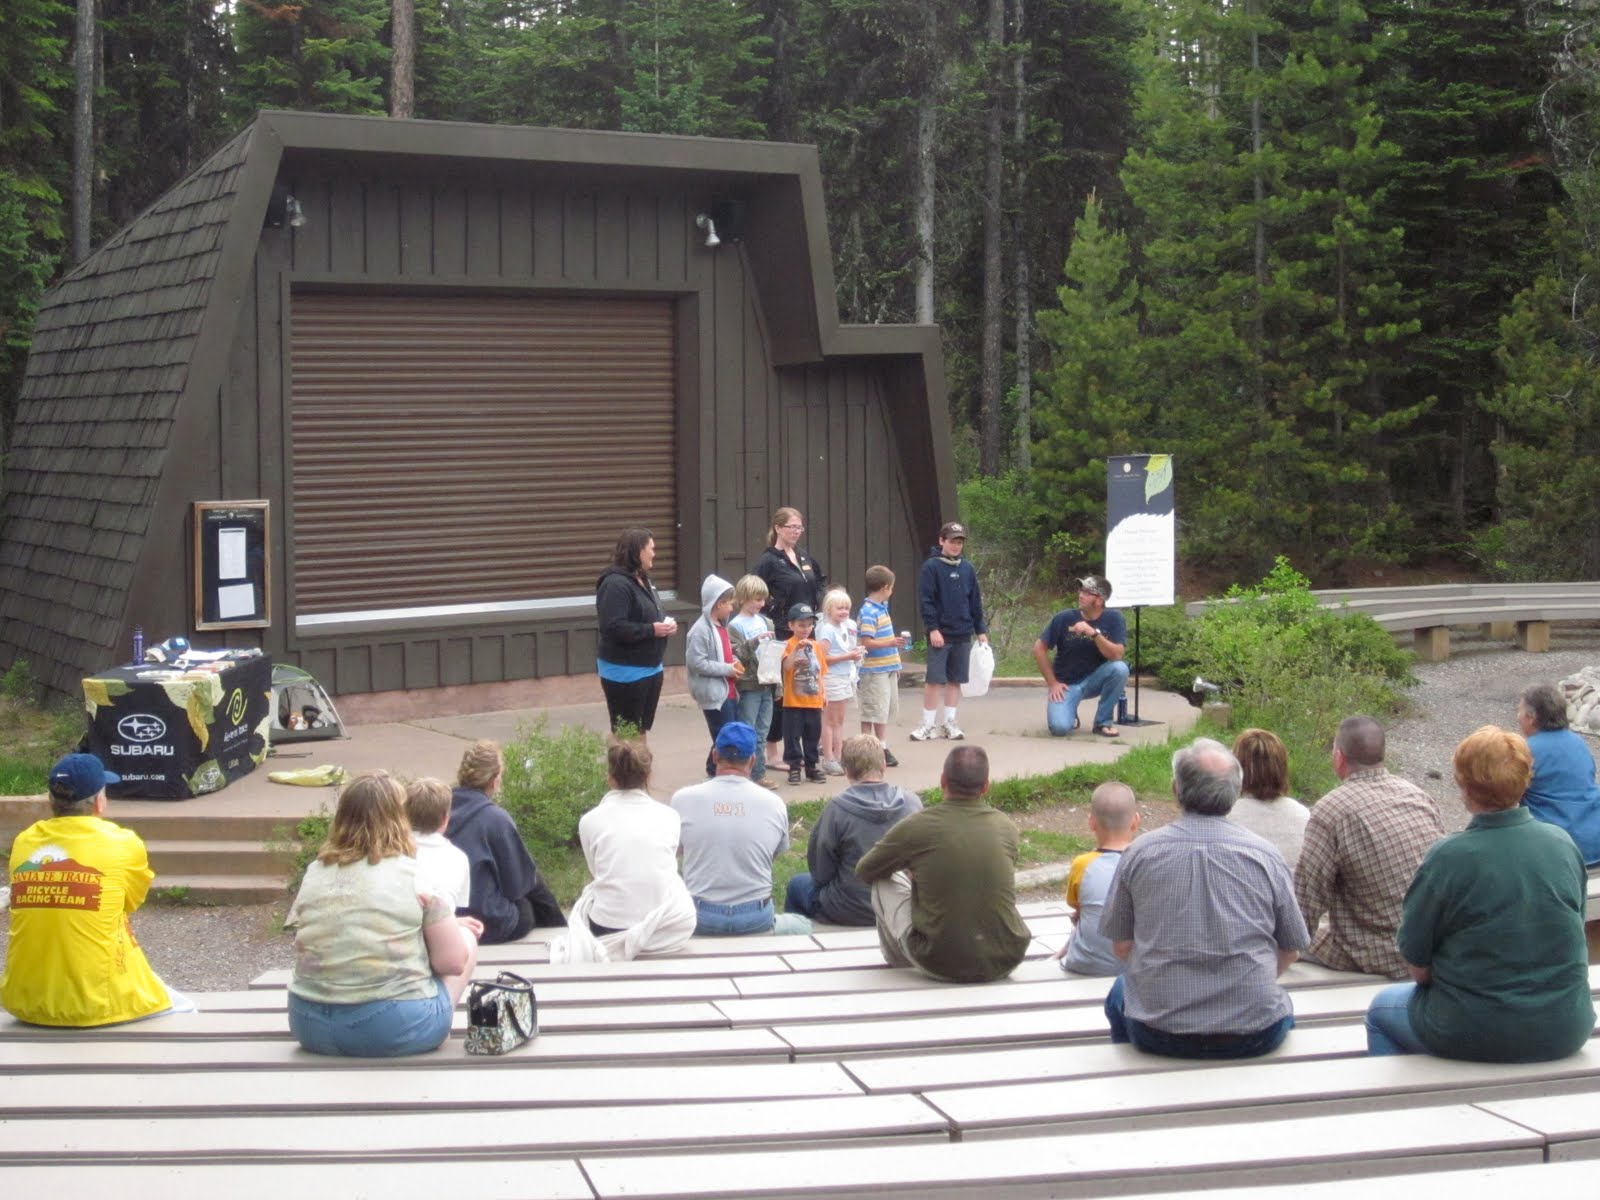 d888efd8775 One of the evenings was spent at the Colter Bay amphitheater enjoying Leave  No Trace educational activities with campers and park staff.